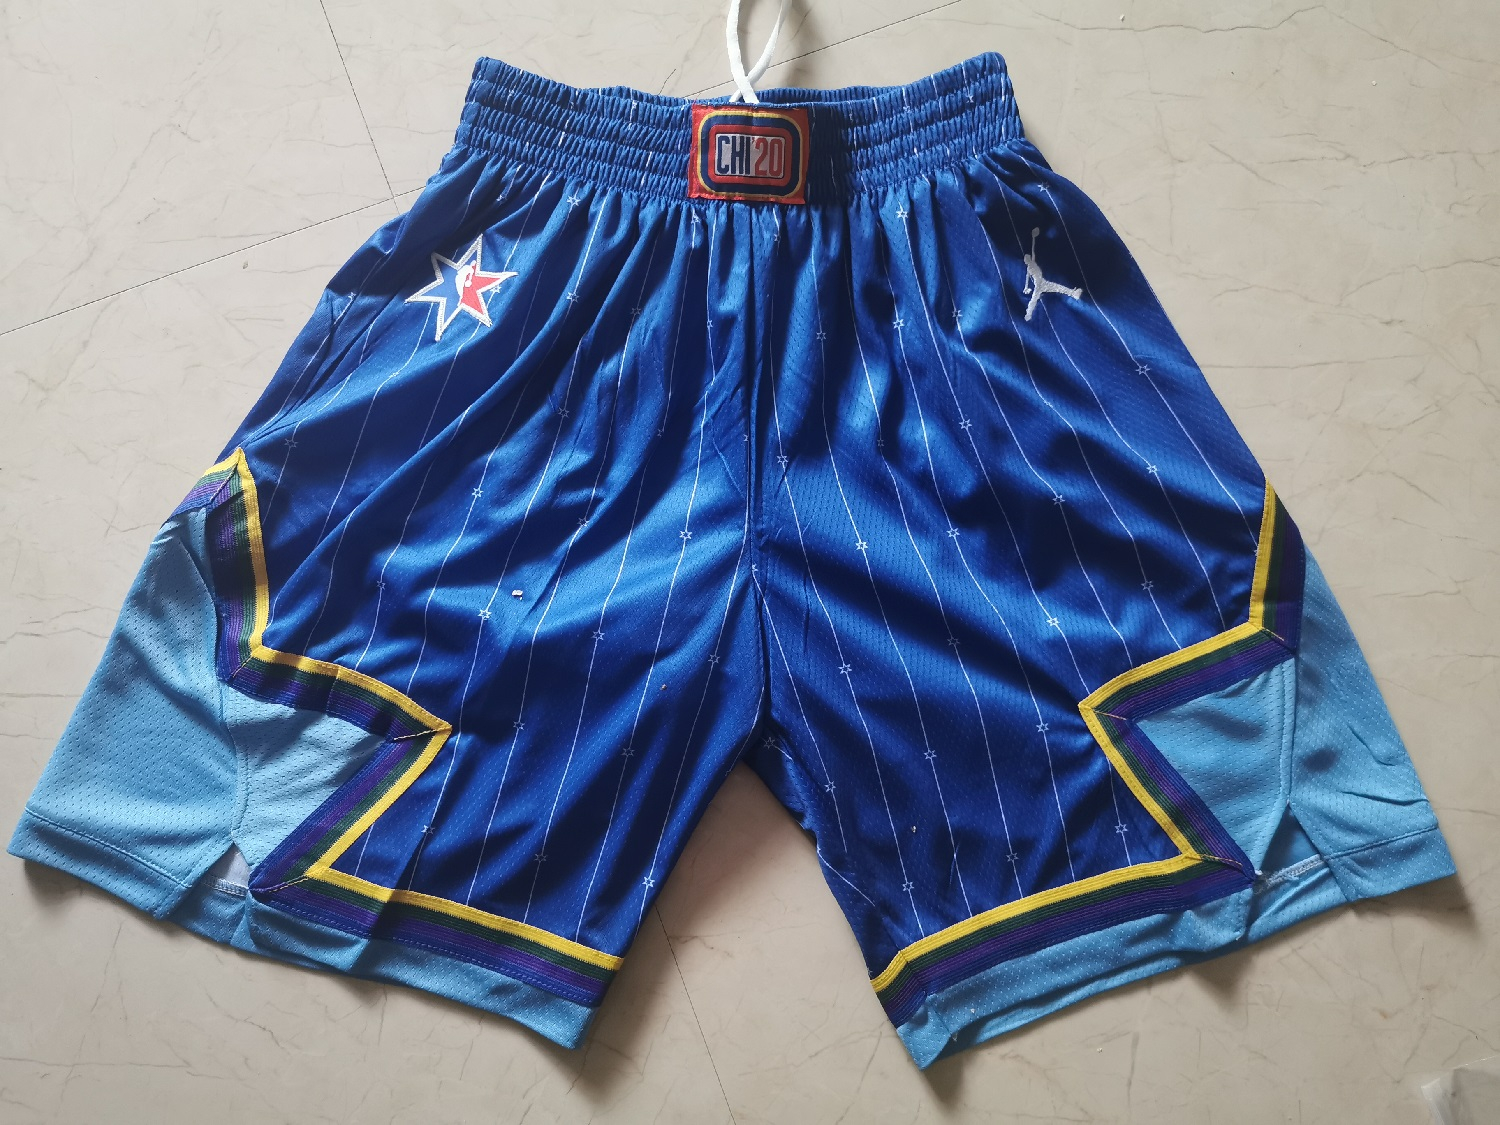 Bulls 2020 NBA All-Star Blue Jordan Brand Swingman Shorts